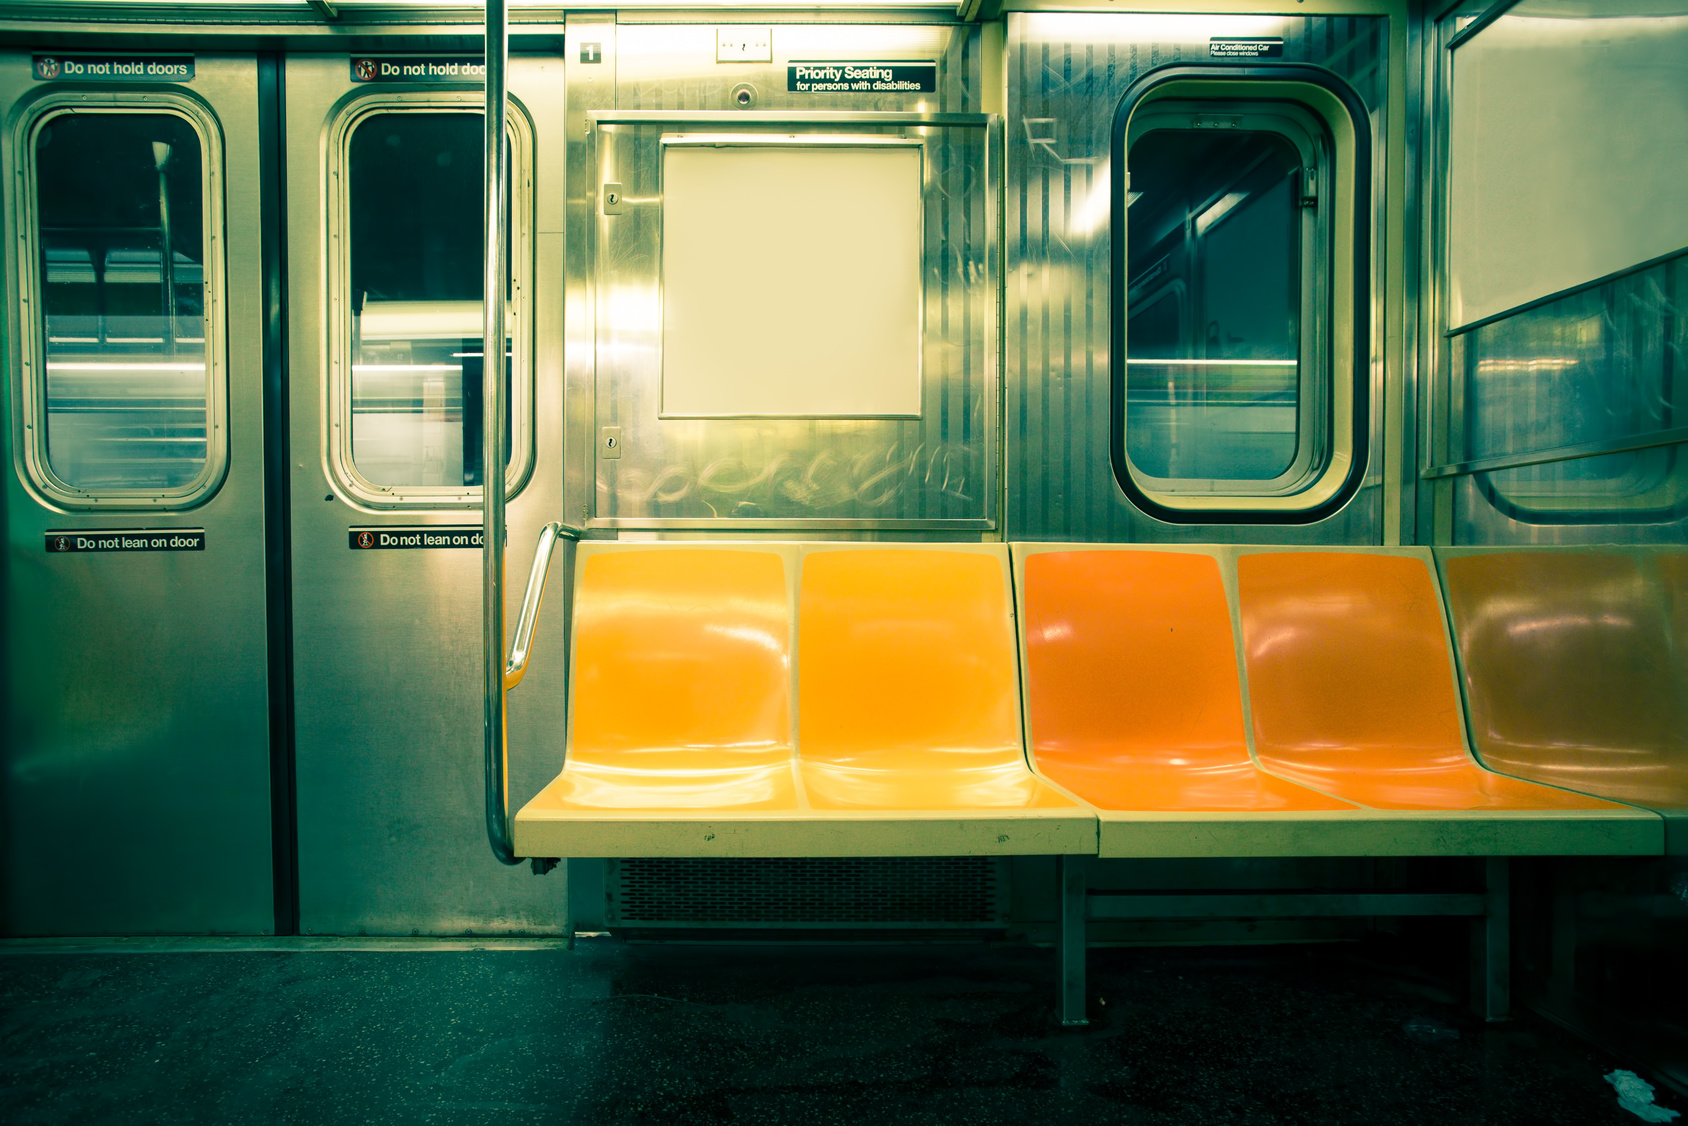 Vintage toned image of New York City subway car